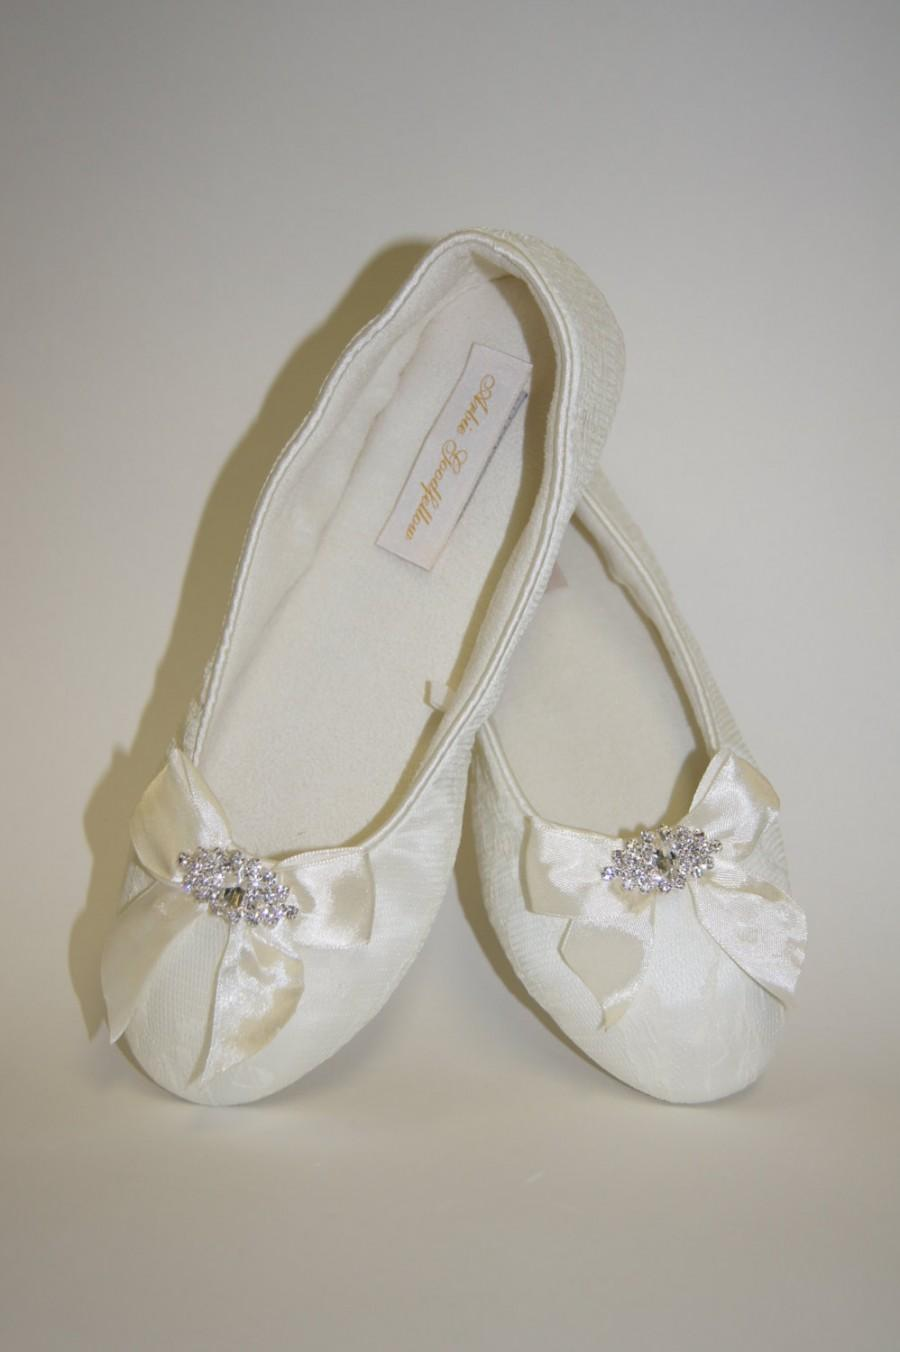 Flat Lace Wedding Shoes Choose From White Or Ivory Flatshoes Ribbons And Crystals Comfortable Parisxox